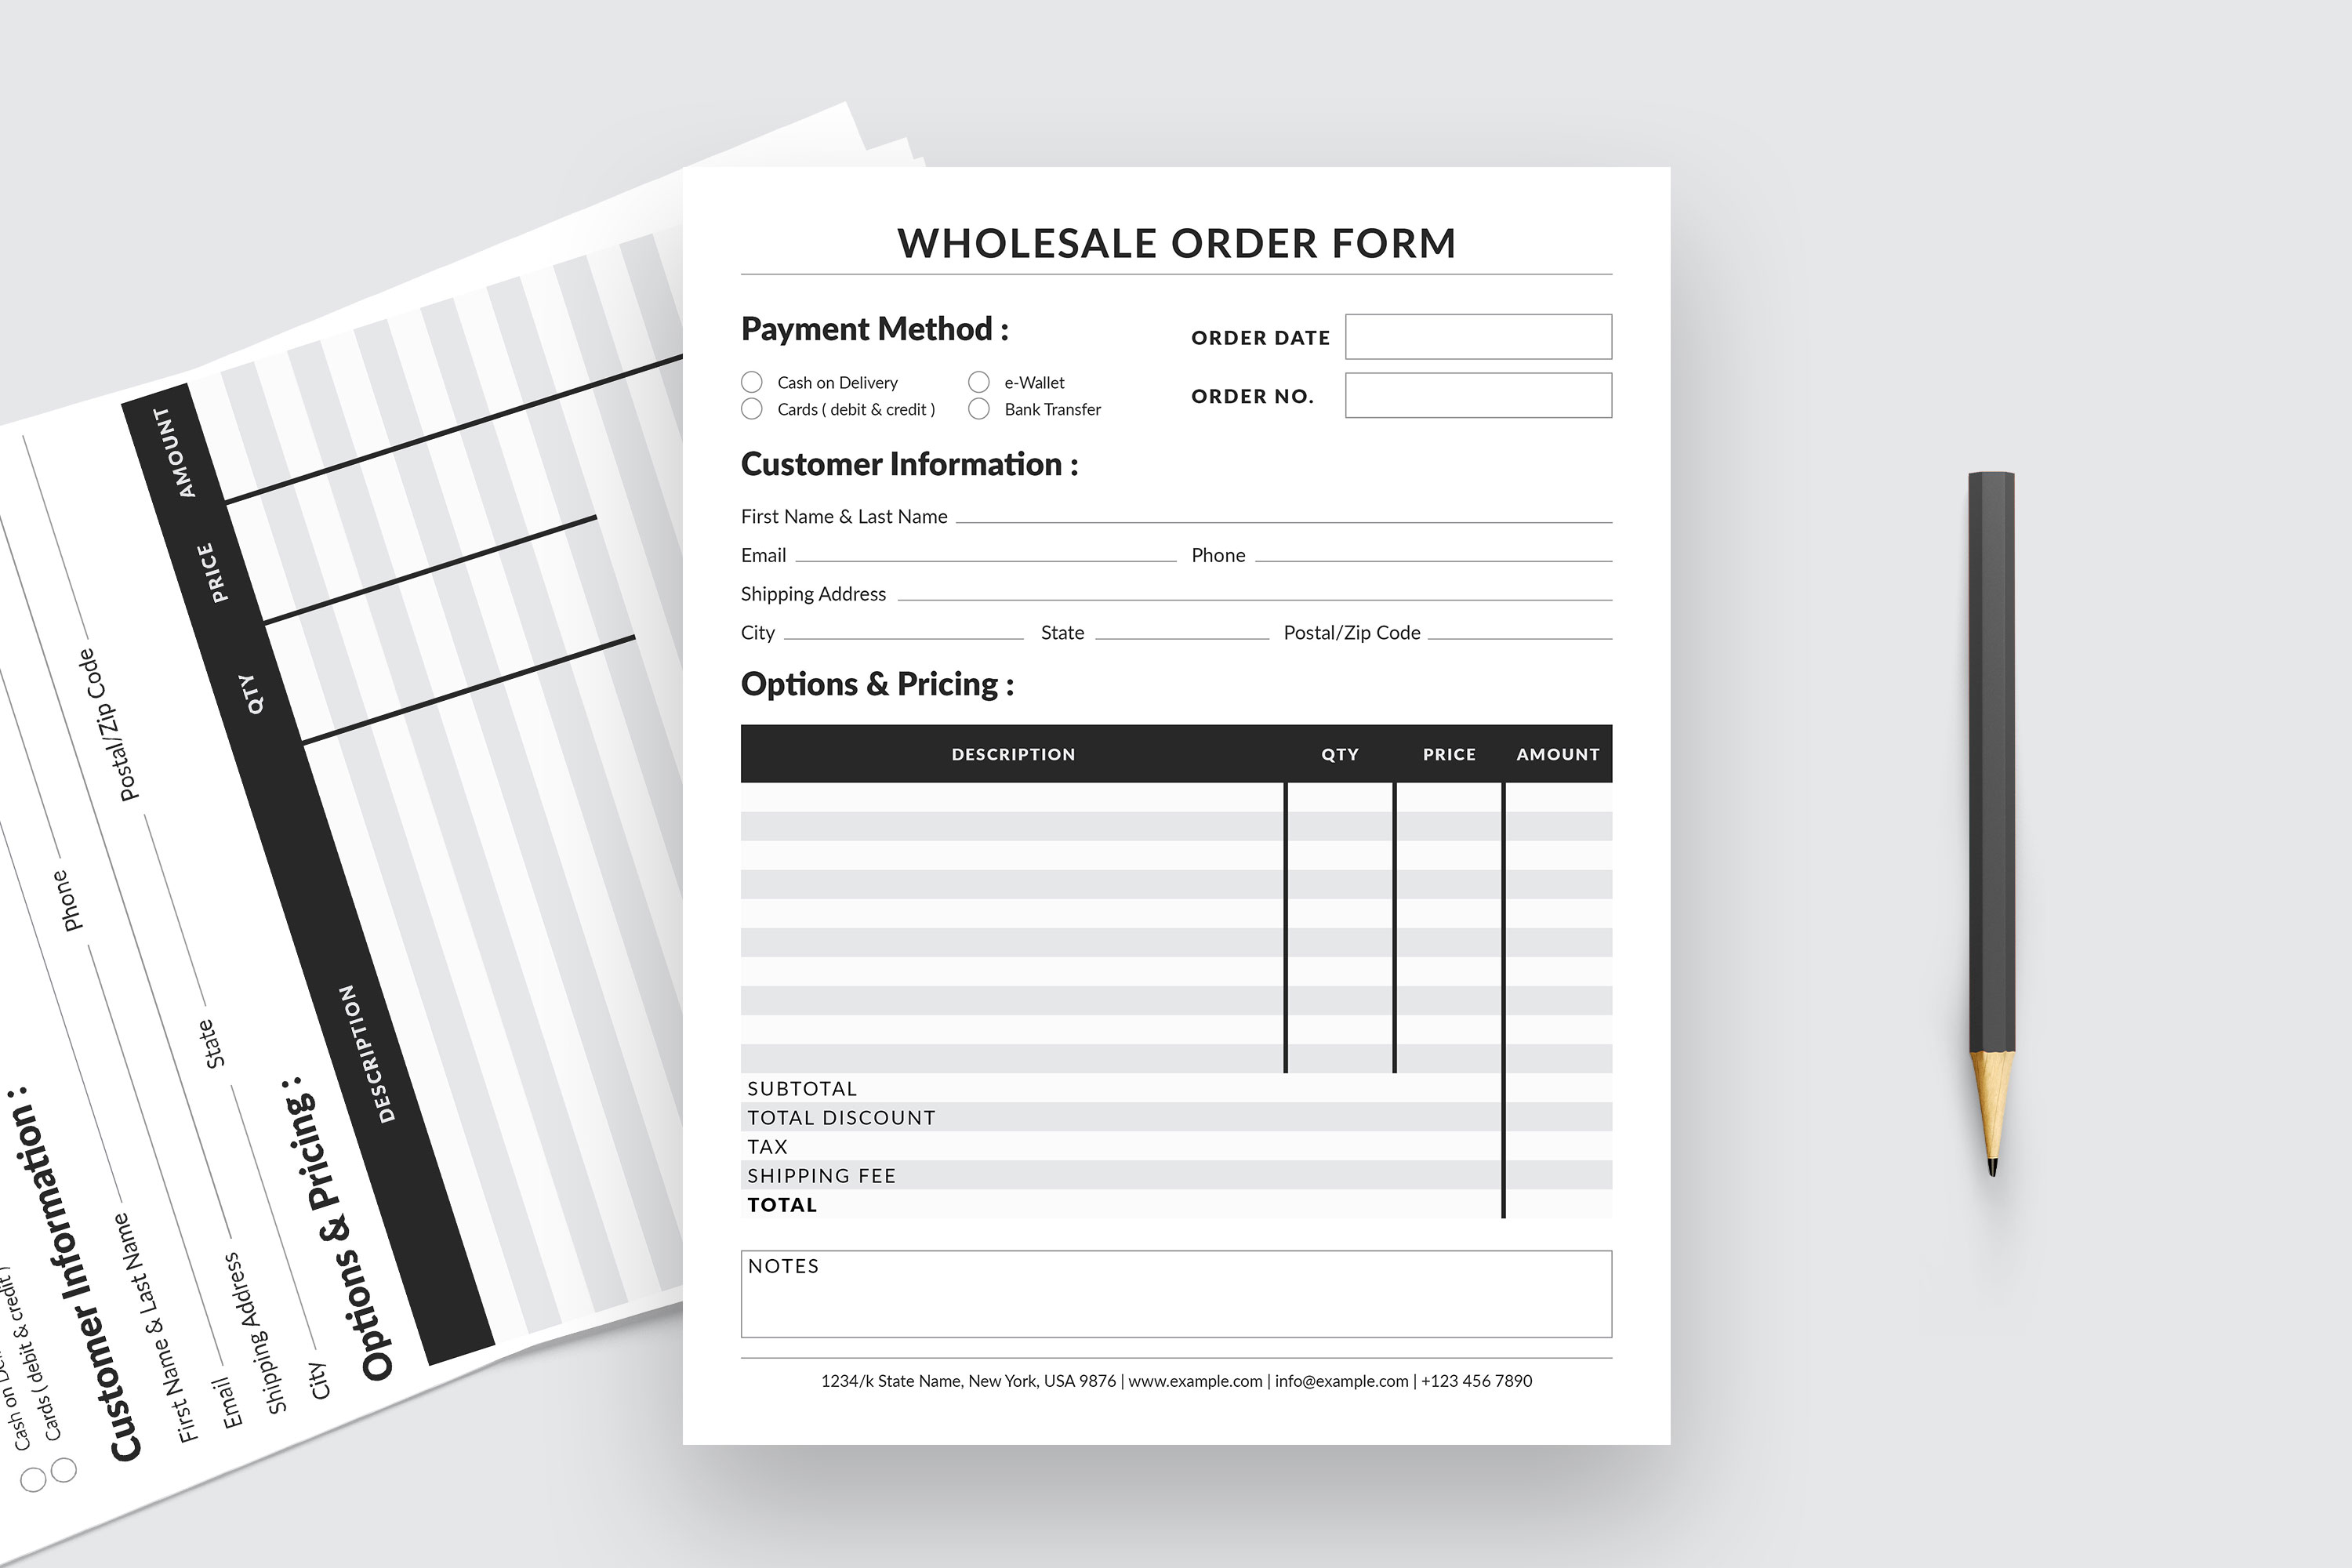 Editable Wholesale Order Form Template example image 5